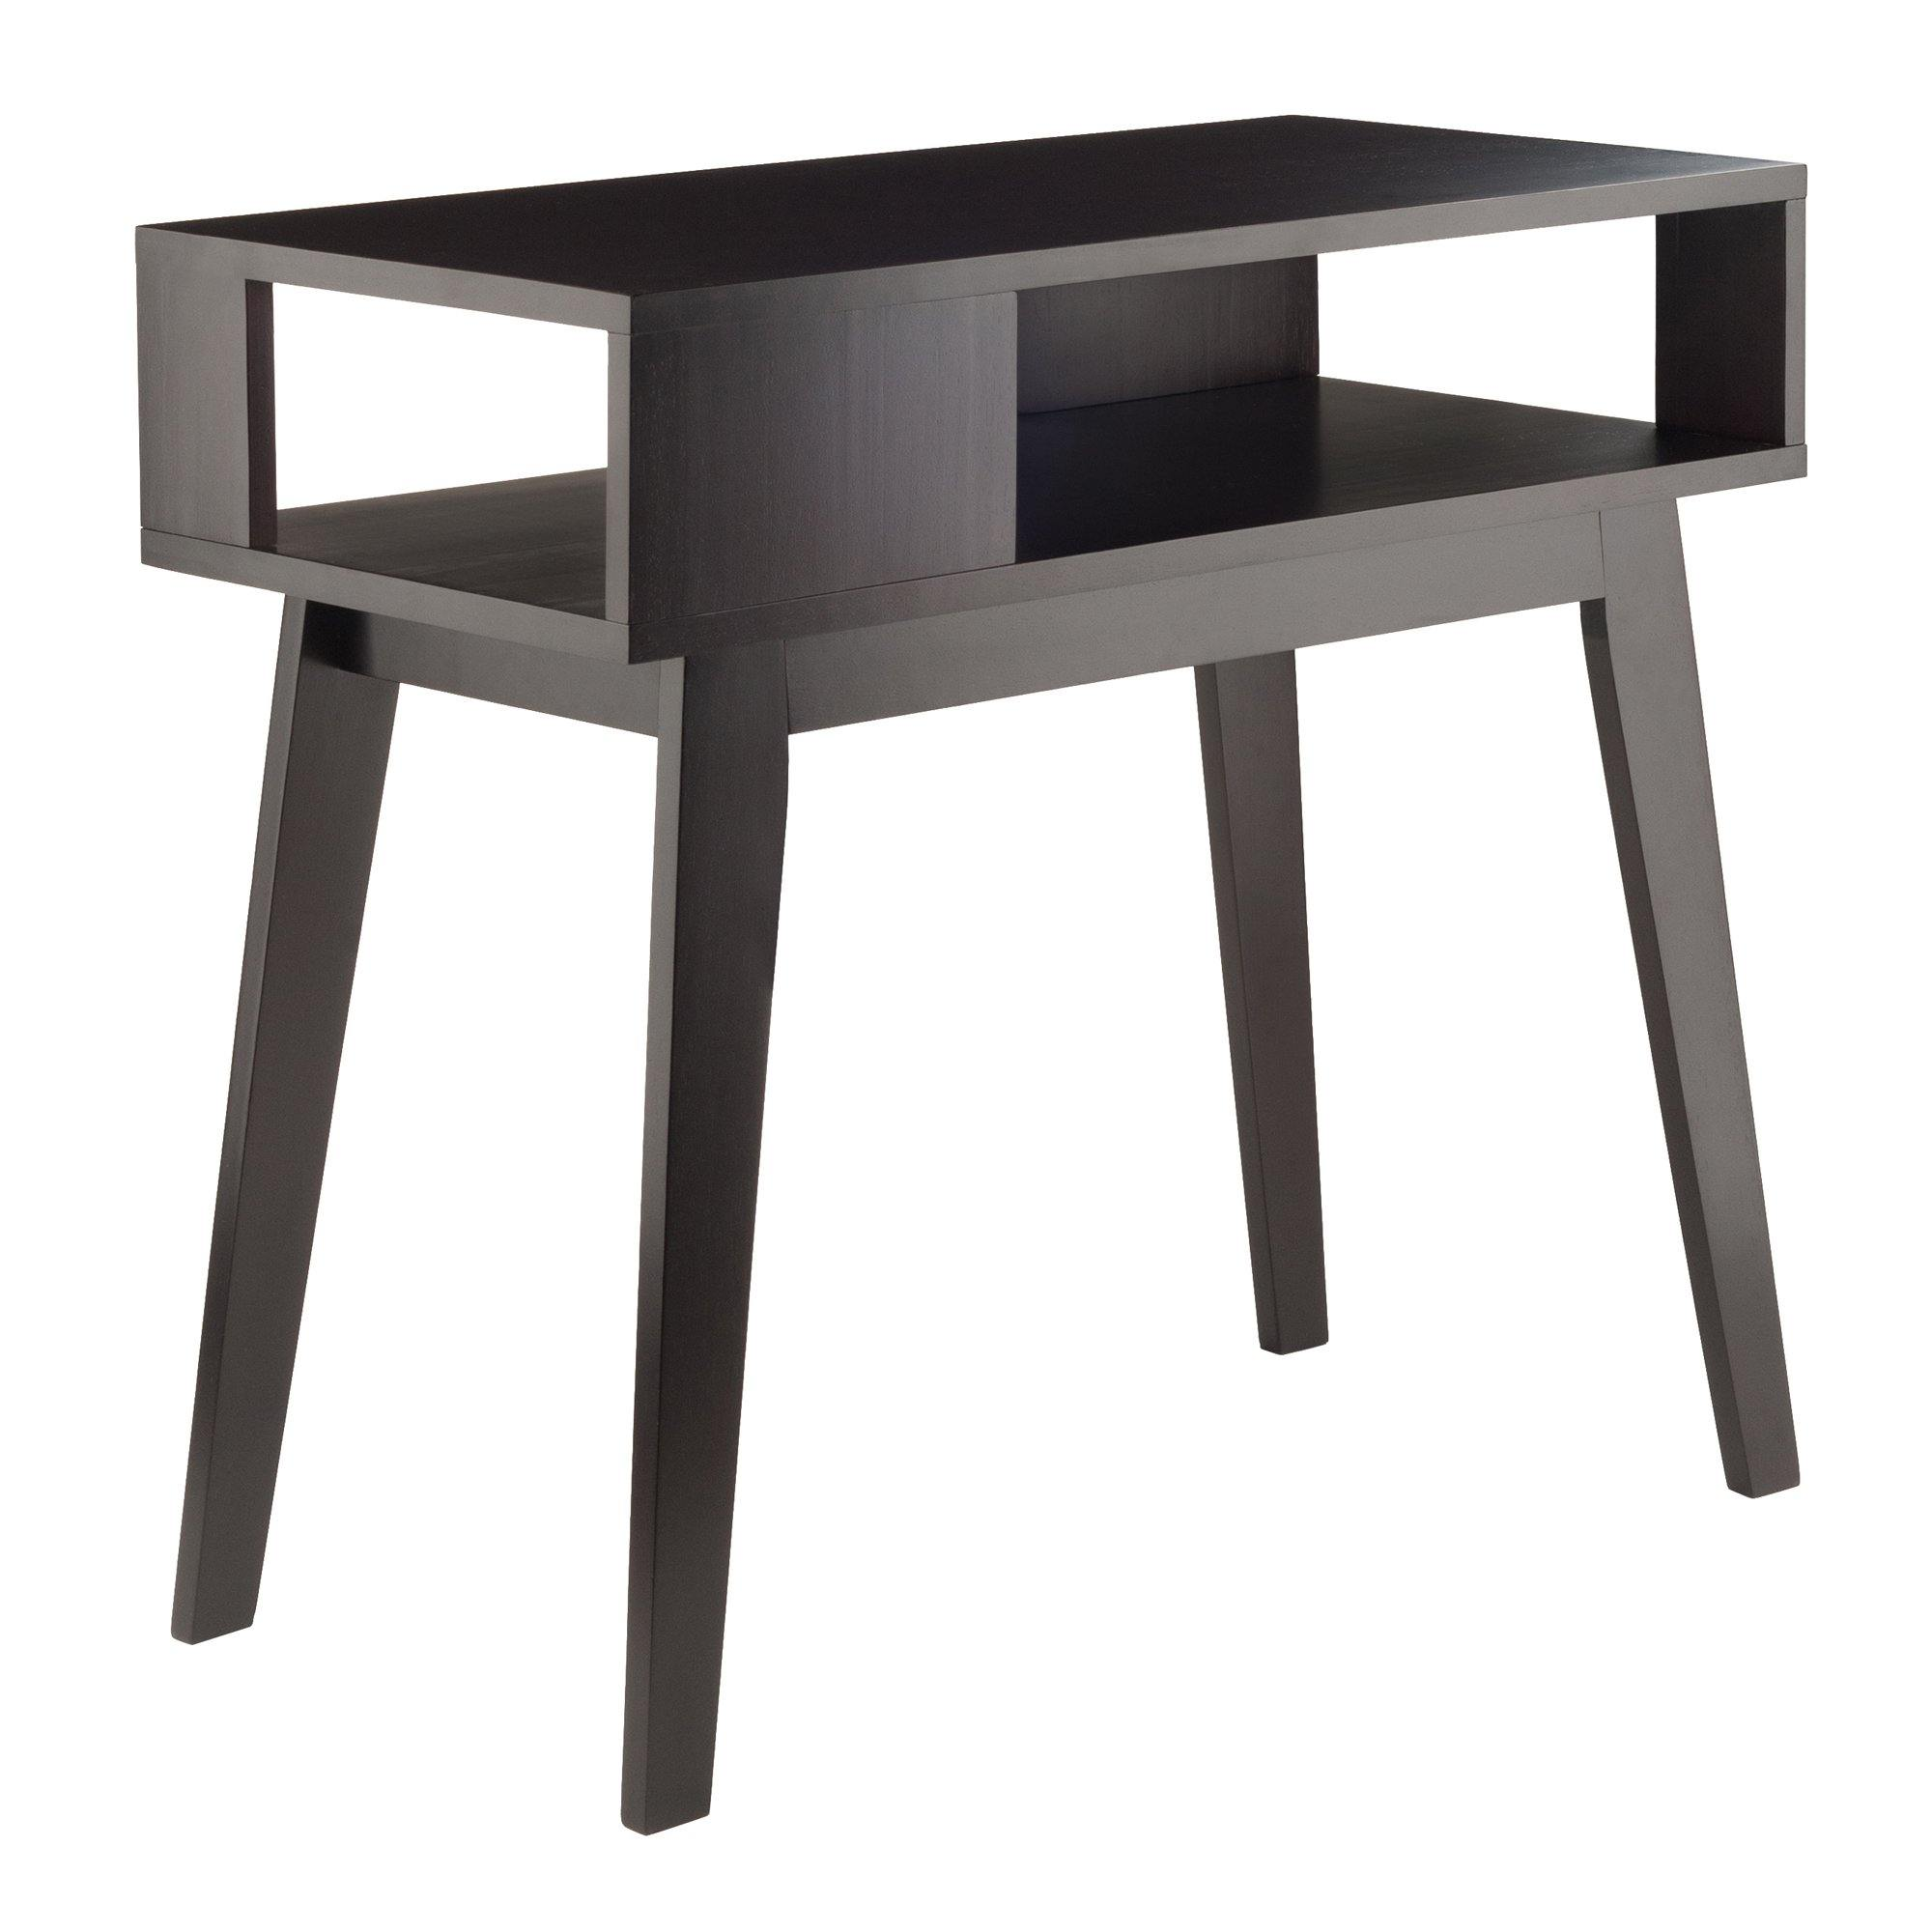 Thompson Console Table - My USA Furniture